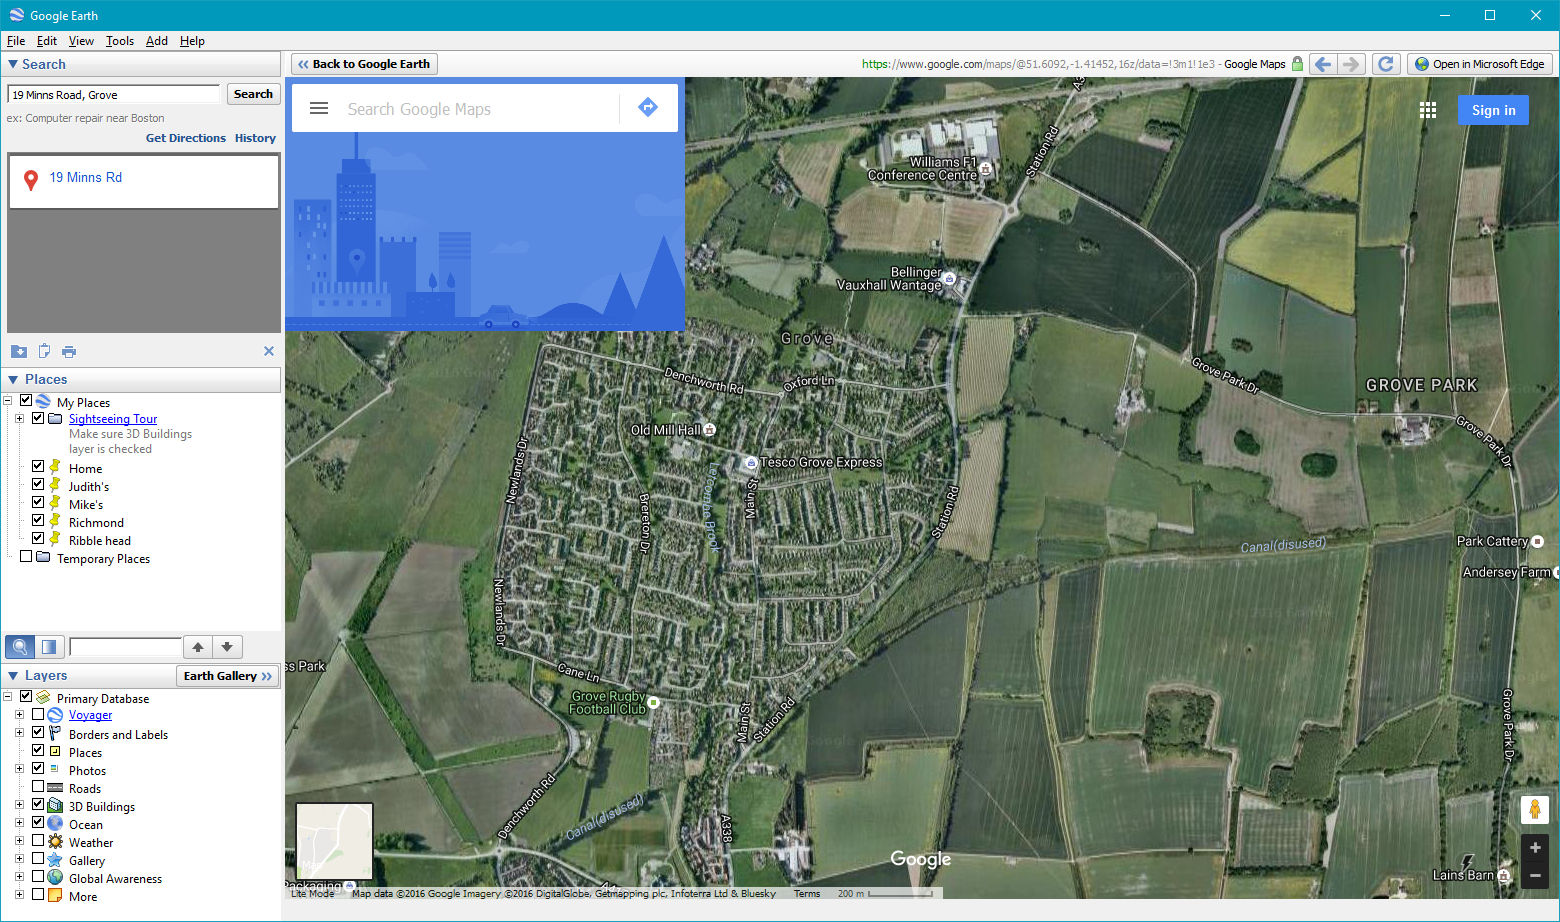 Google earth won\'t switch to map - Google Maps Help